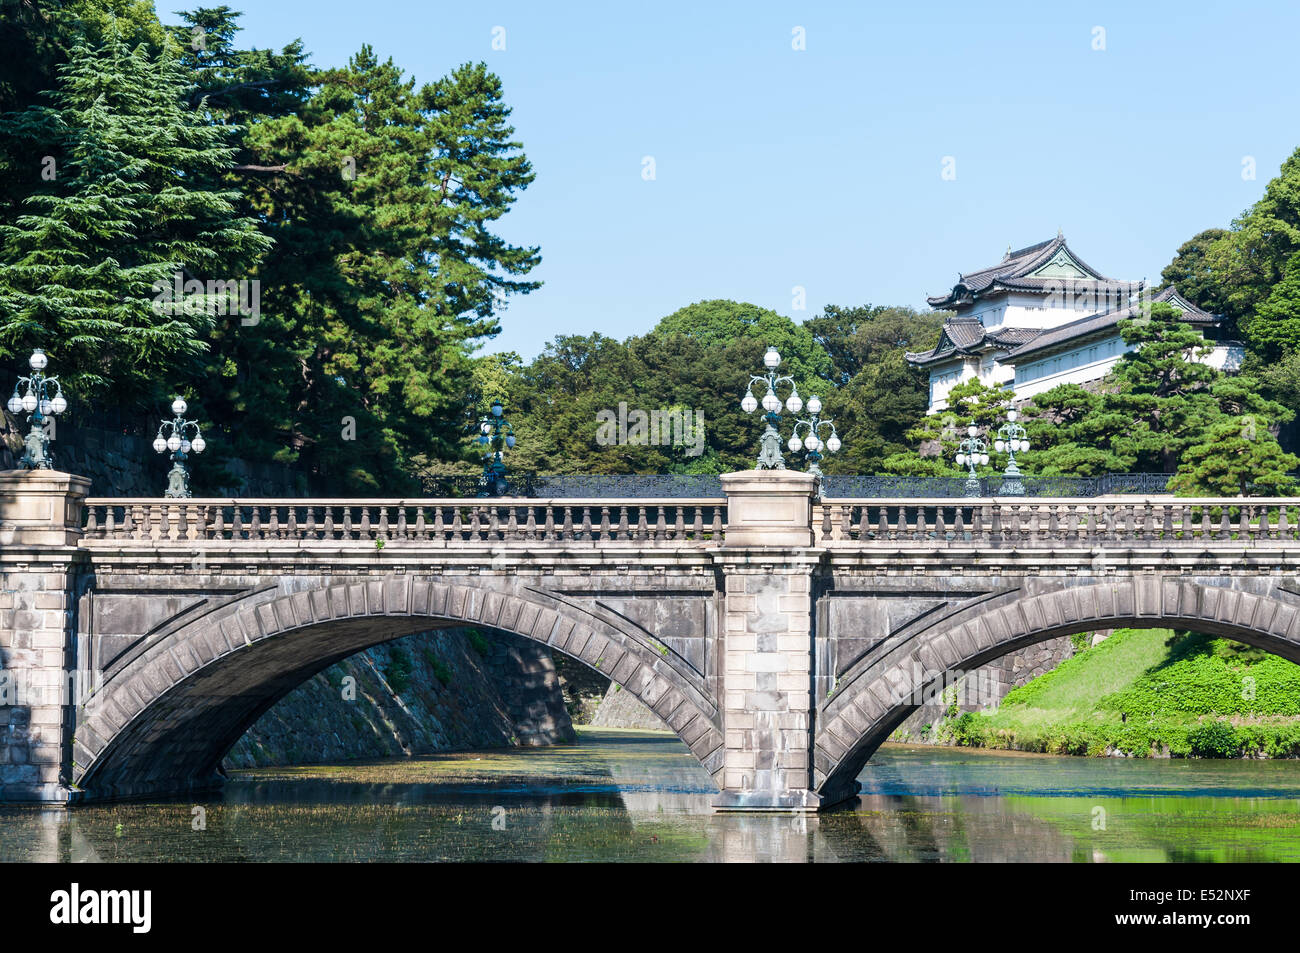 The Imperial Palace and Nijubashi Bridge in Tokyo, Japan. - Stock Image